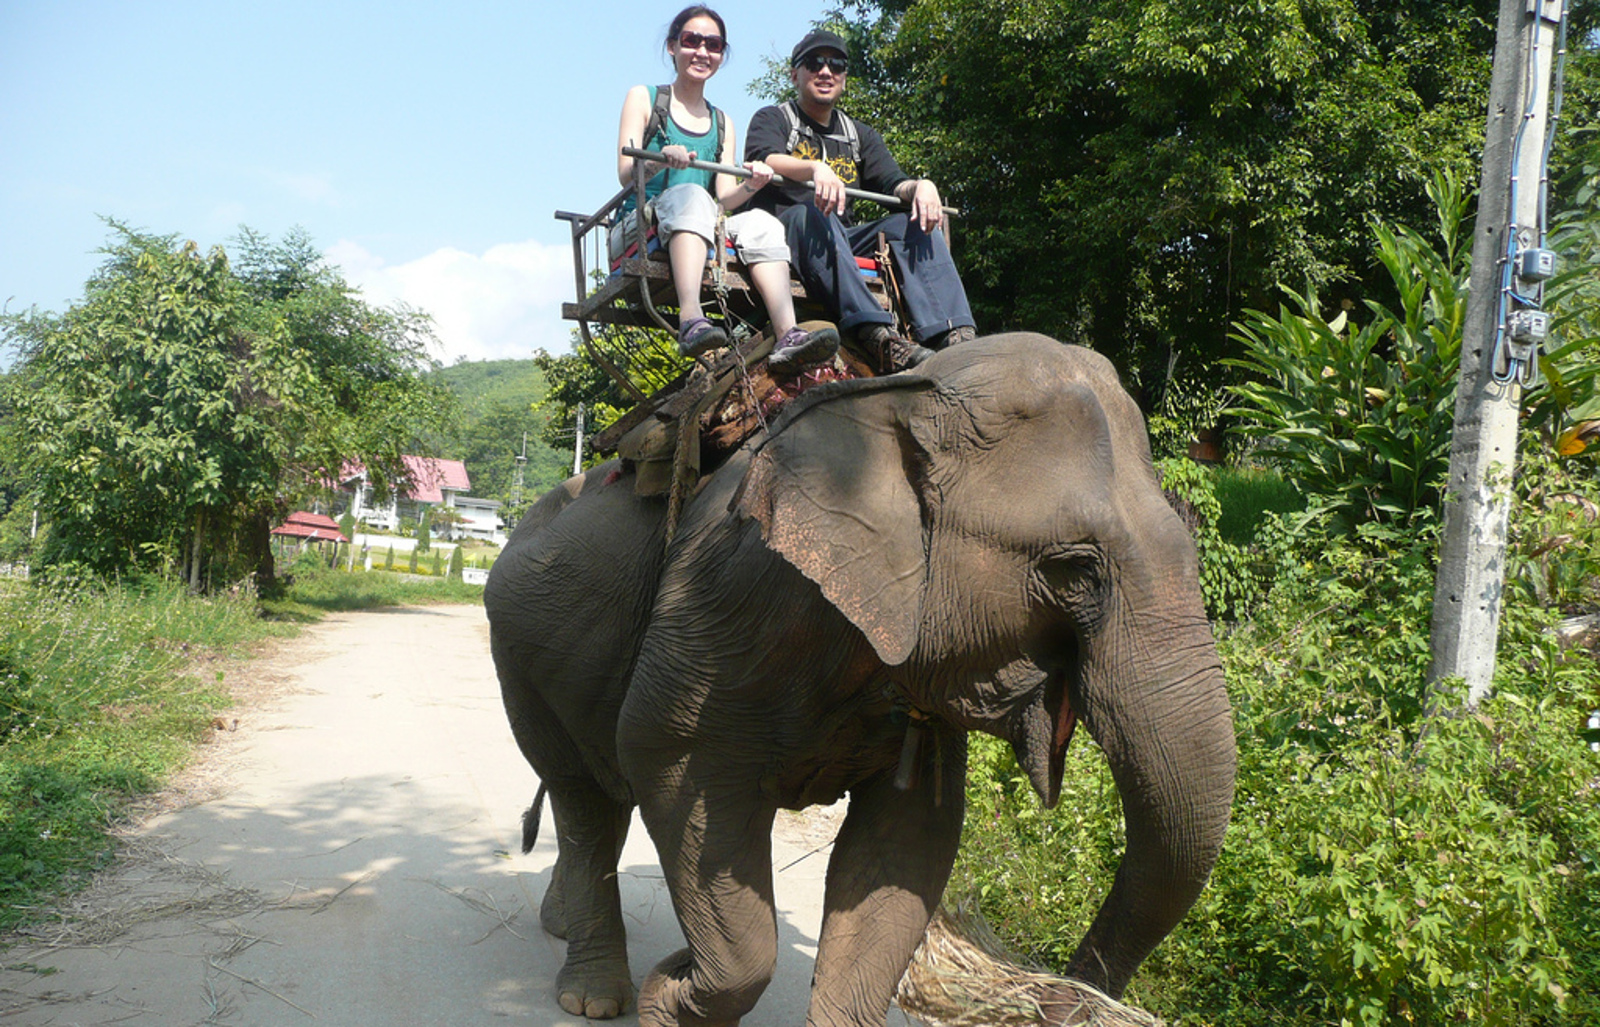 Think Elephant Rides are Cute? Here's Why You Should Reconsider